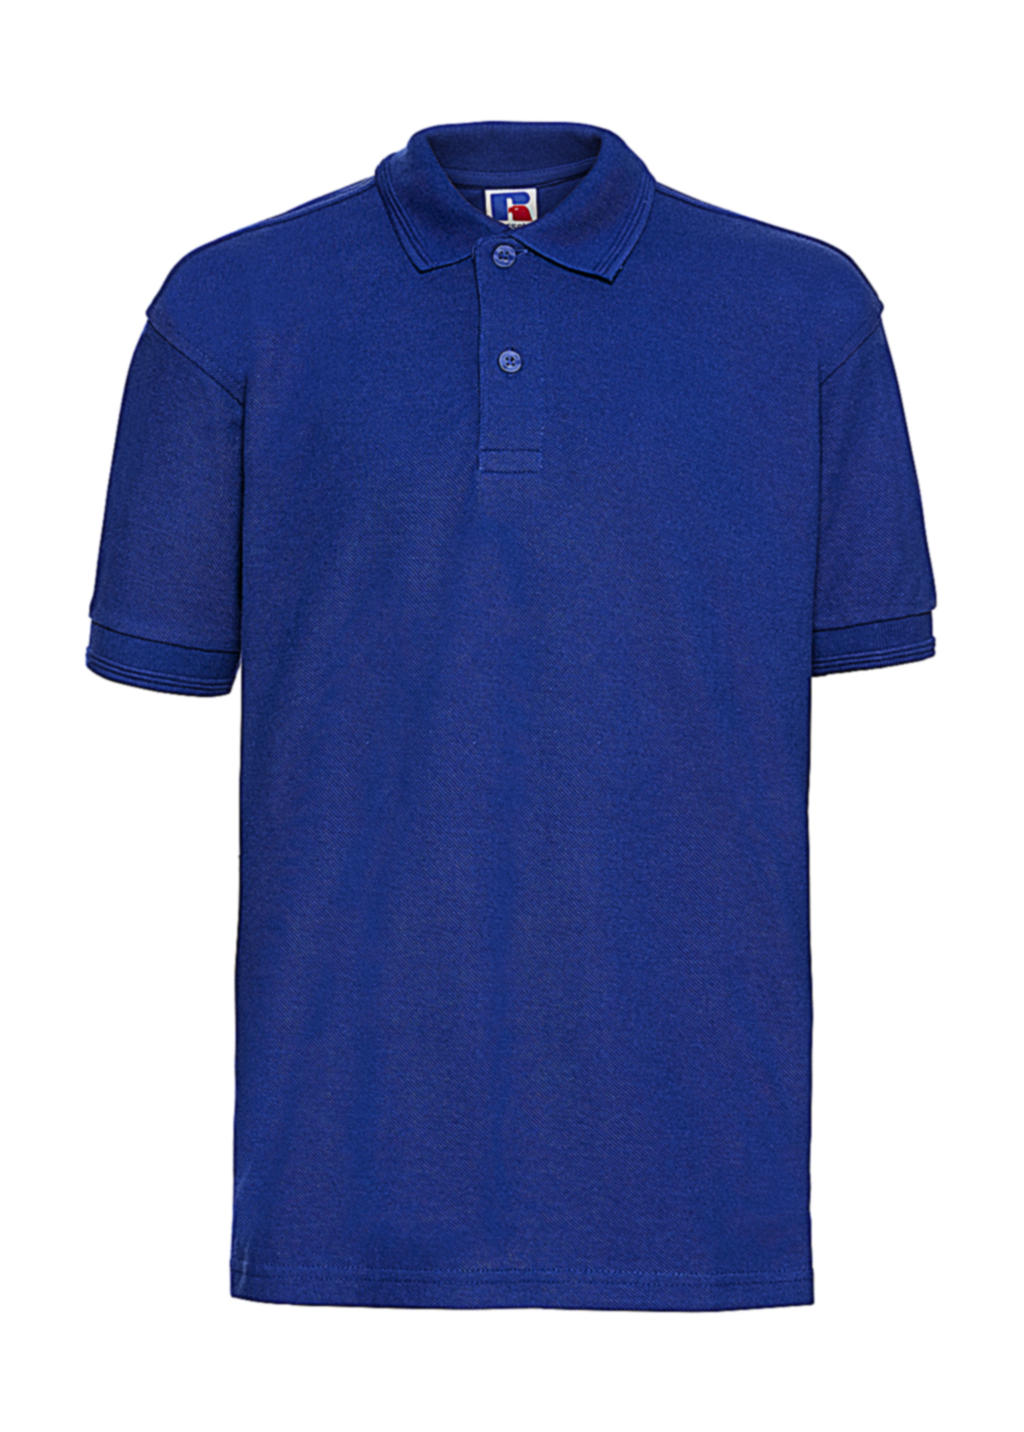 Russell Europe Kids` Polo Shirt